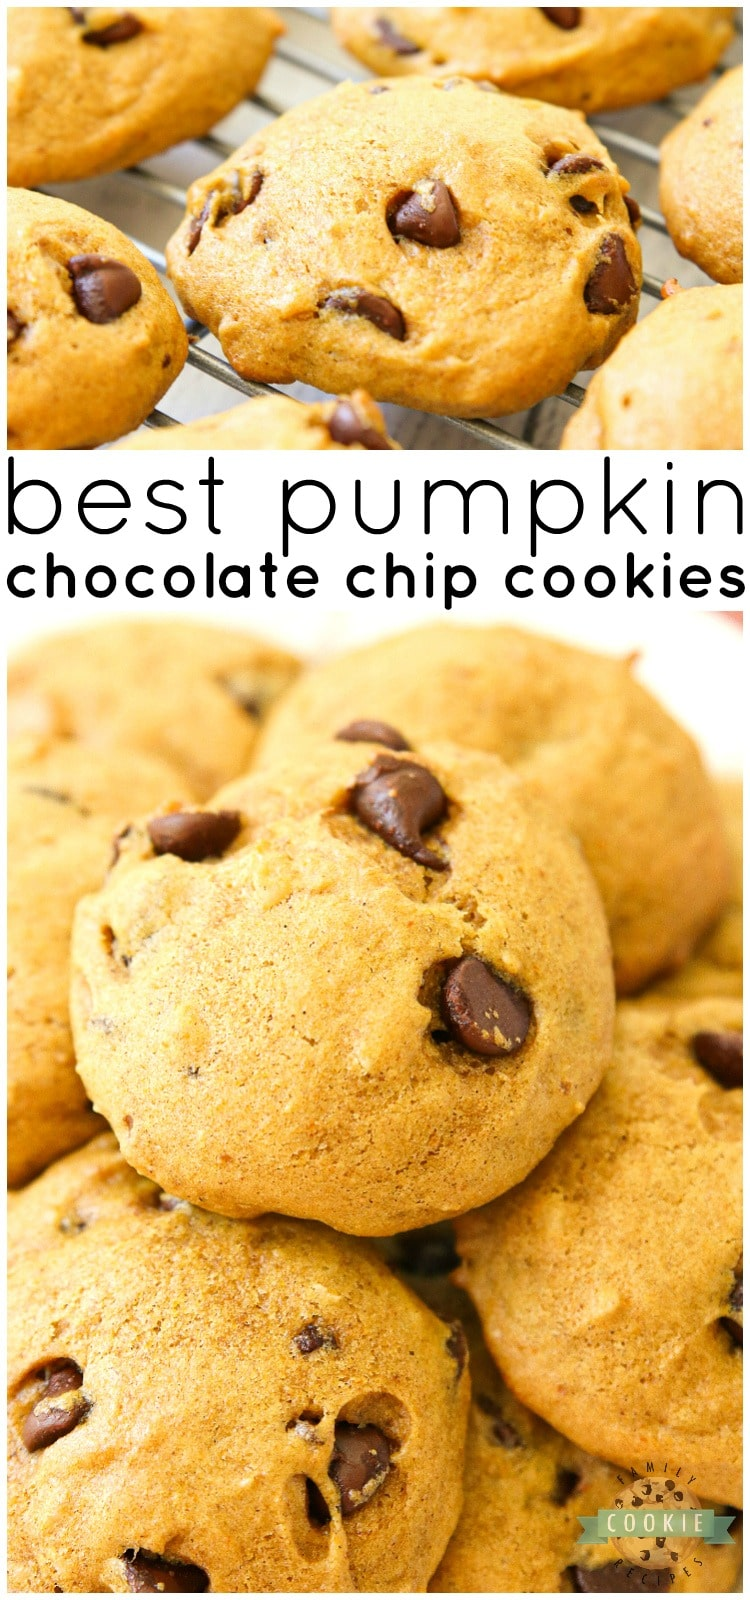 Delicious Pumpkin Chocolate Chip Cookies are incredible pillows of soft and chewy cookie goodness! Pillowy soft chocolate chip cookies straight from the oven are made even better with the addition of pumpkin. #chocolatechip #pumpkin #cookies #baking #dessert #recipe from FAMILY COOKIE RECIPES